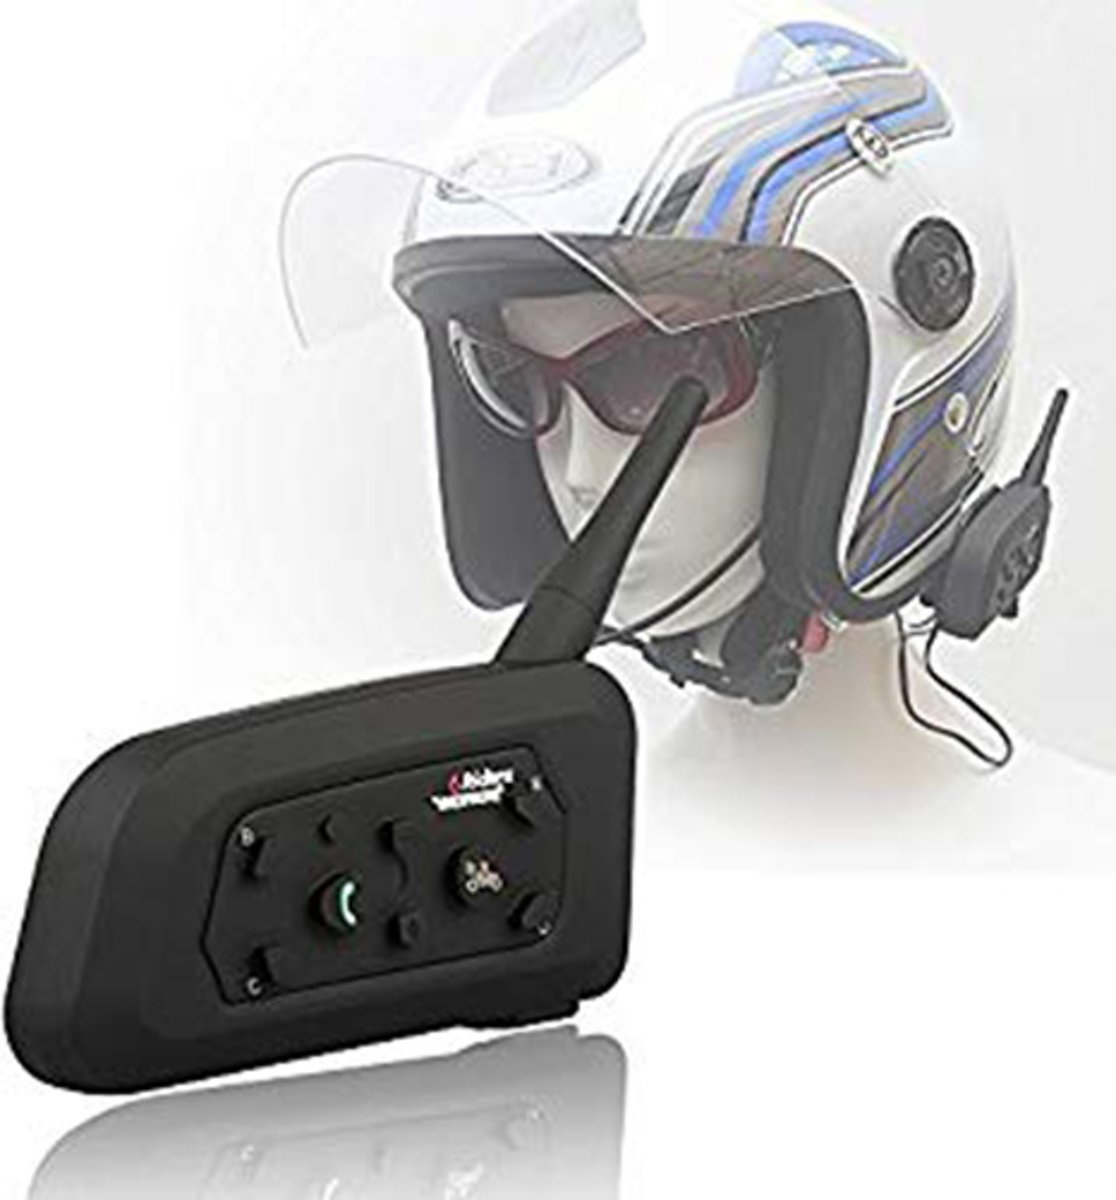 1 modules v6 motor intercom bluetooth headset interphone communicatie systeem voor 1 persoon kopen